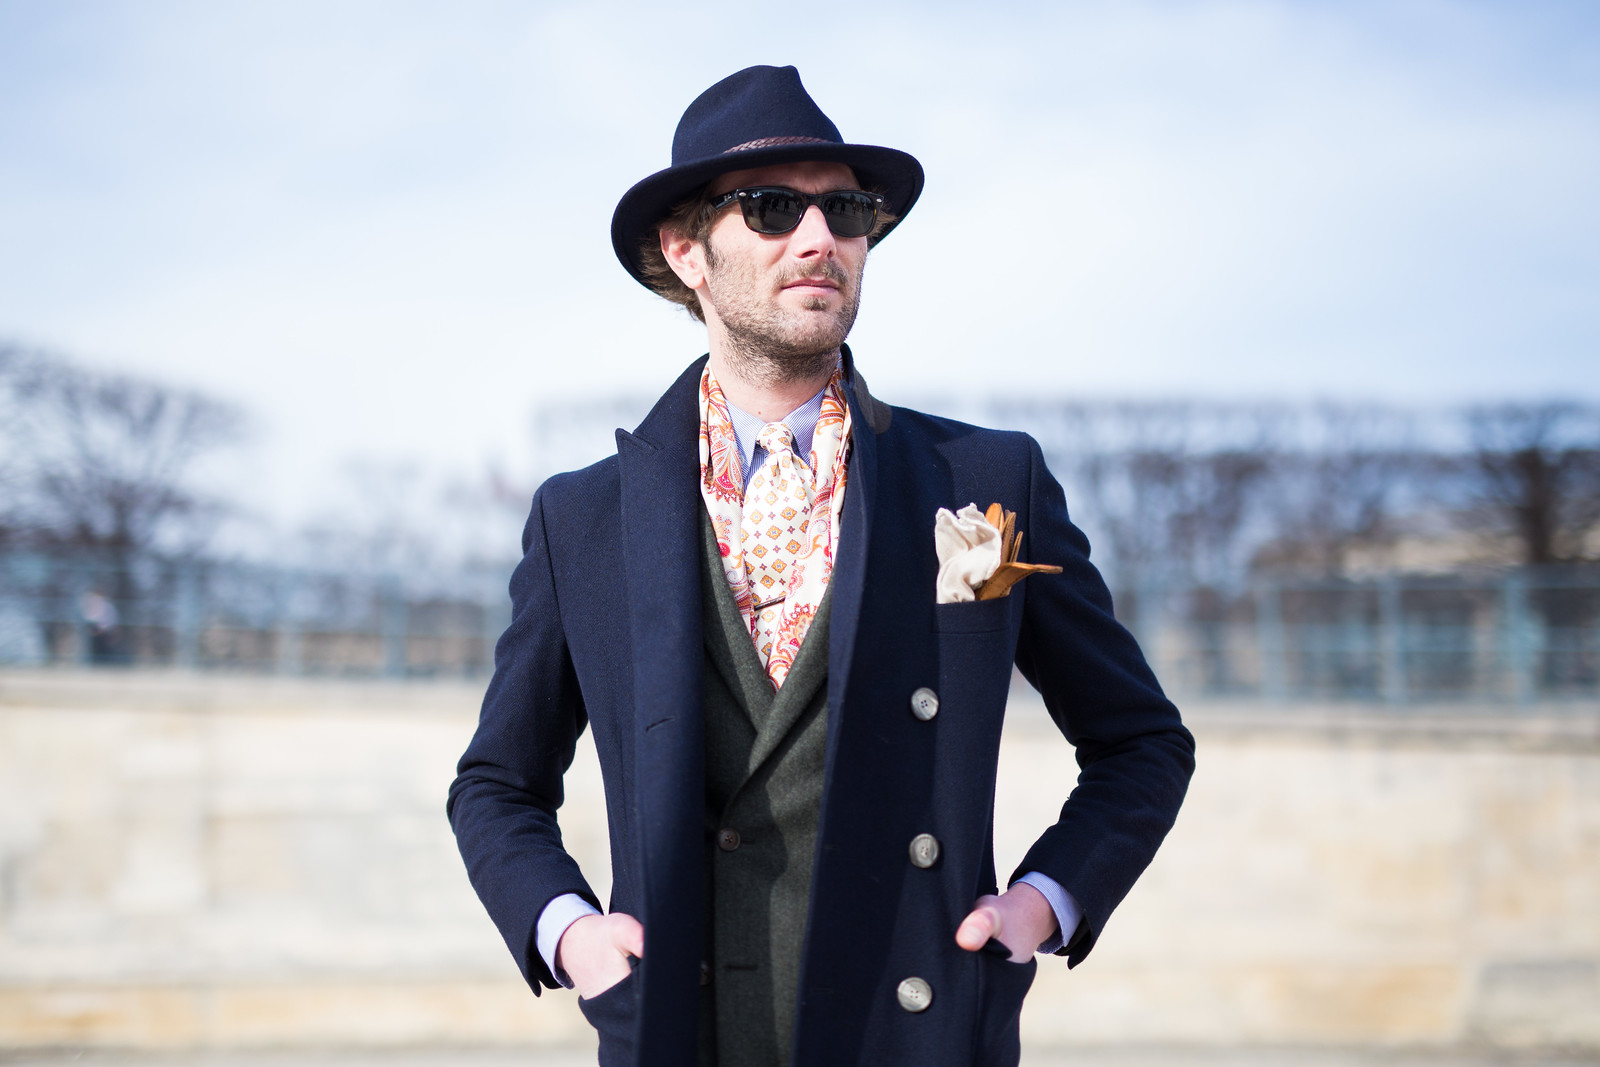 Street Style - Thomas Drischel, Paris Fashion Week